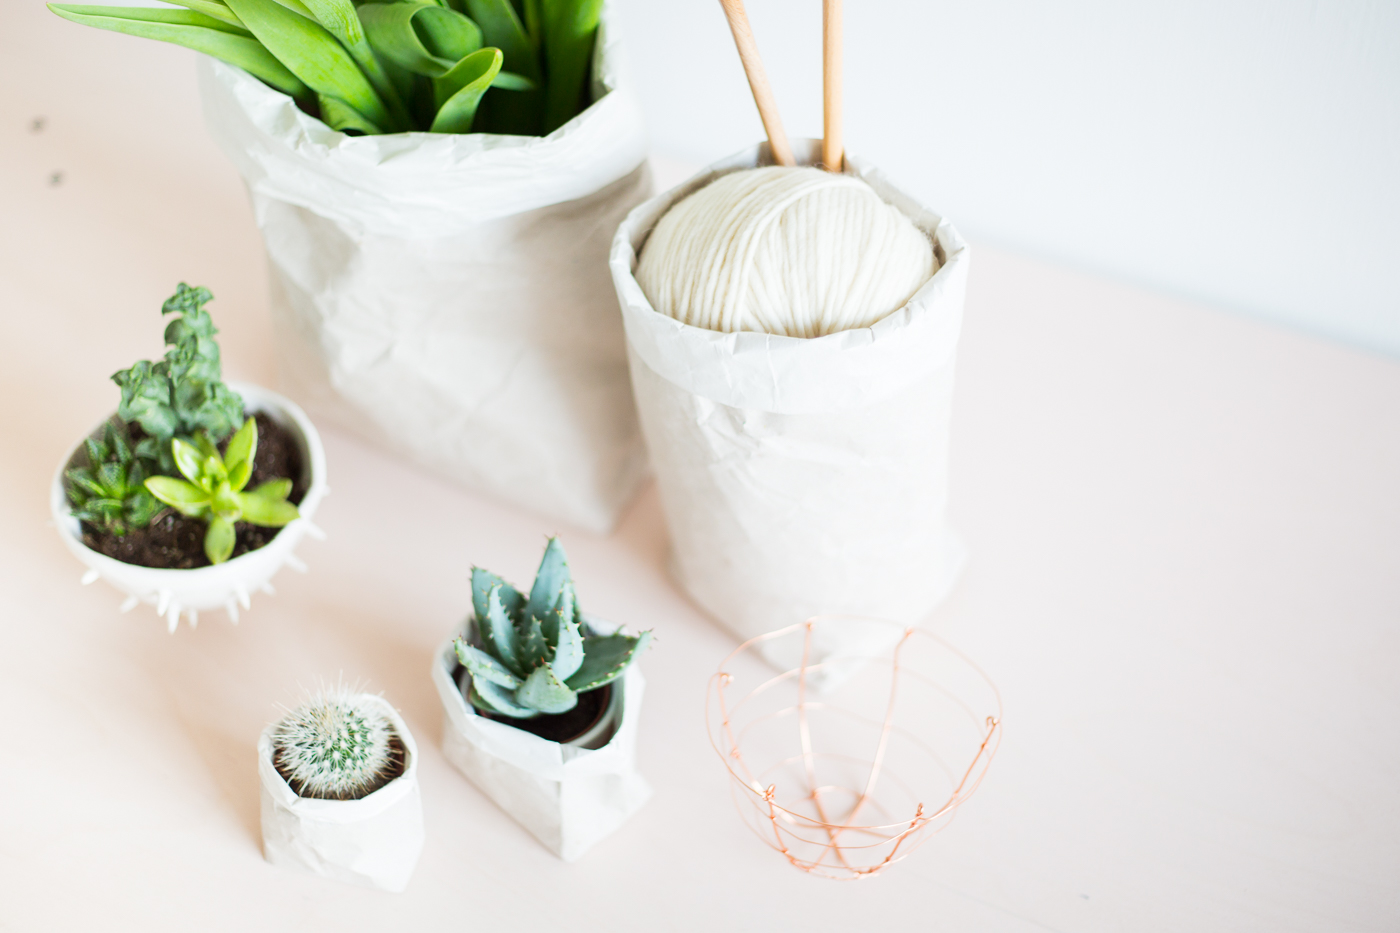 Packing-Paper-Sack-Planters-@fallfordiy-24